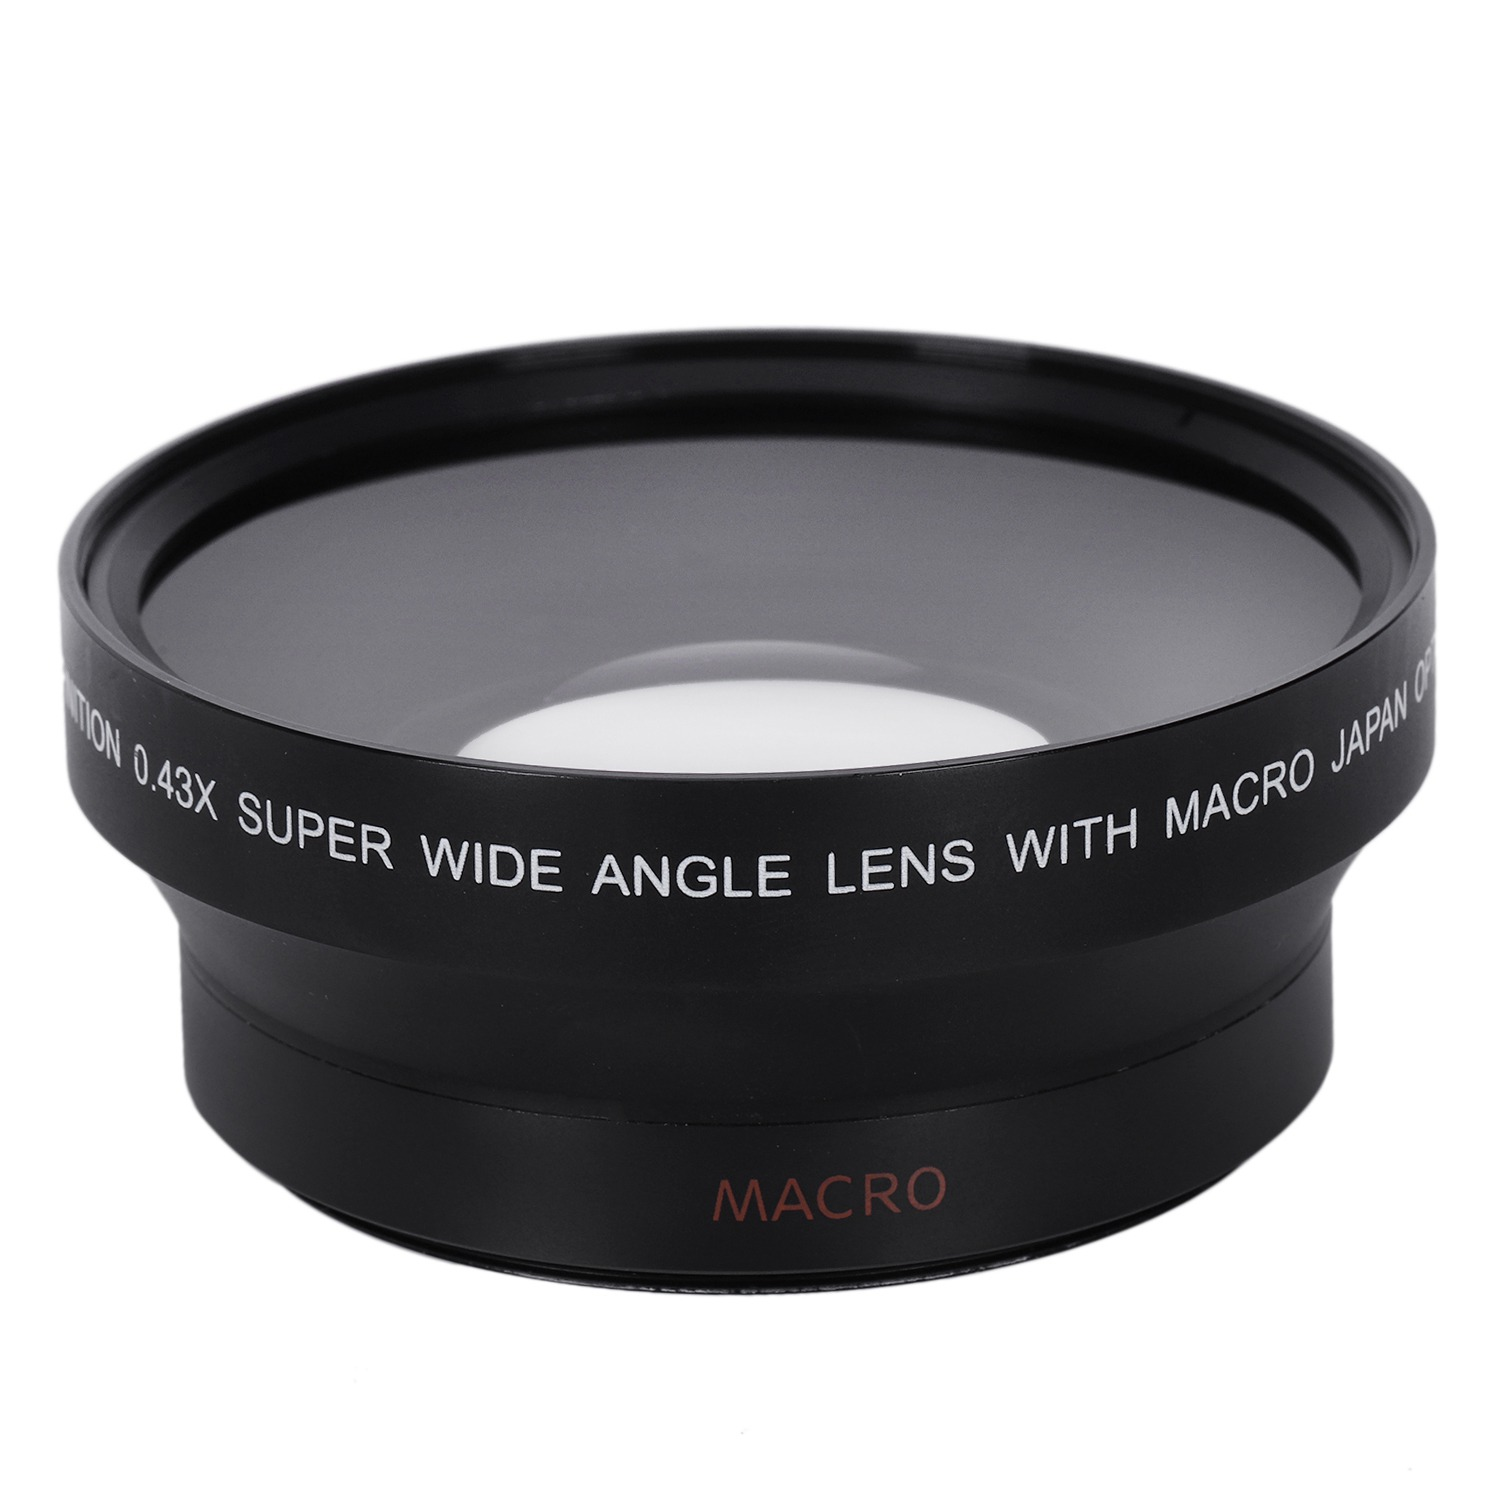 67MM 0.43X Wide Angle Macro Lens with Macro for Nikon D200 D100 D2H D80 D50 D70 D70S D90 Canon 550D 600D 650D 1100D 5DII 7DII